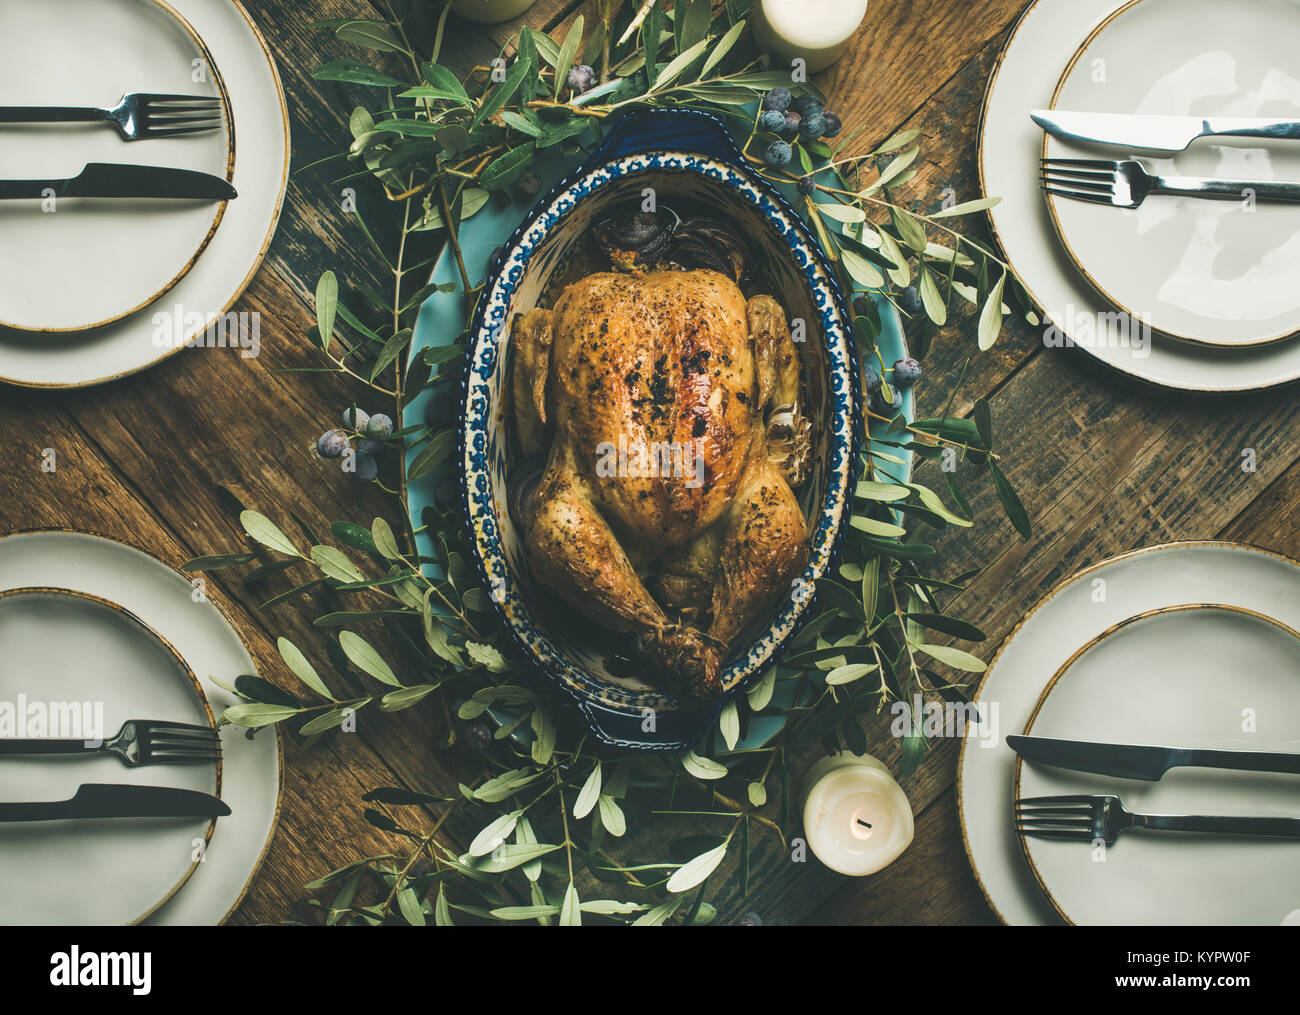 Flat-lay of whole roasted chicken in tray for Christmas eve celebration, plates and candles over rustic wooden background, - Stock Image